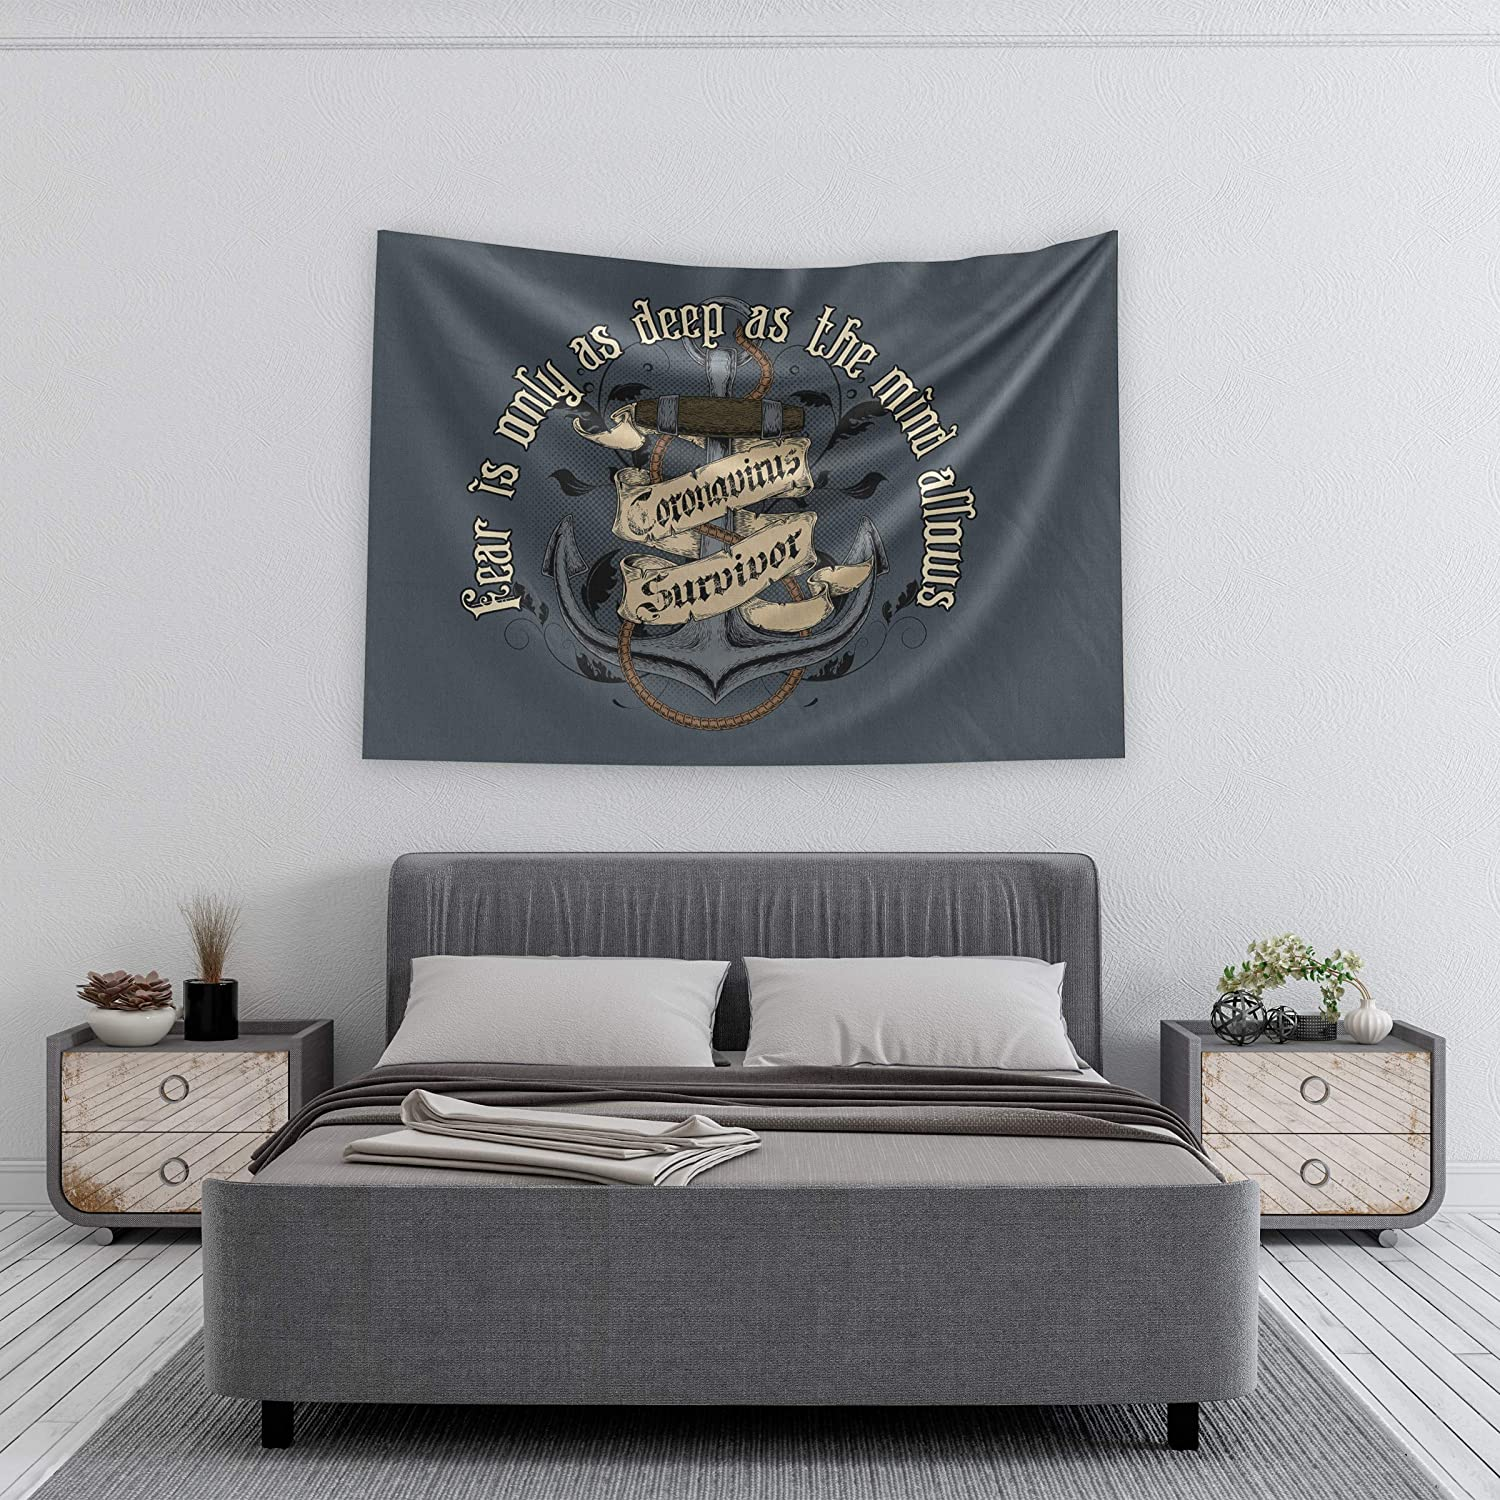 Pro-Graphx Coronavirus Flag COVID-19 Display Warning Quarantine Area Large Tapestry Decorative Banner Outdoor Stop The Spread Fight Against House Porch - 3' x 5' - Fearless